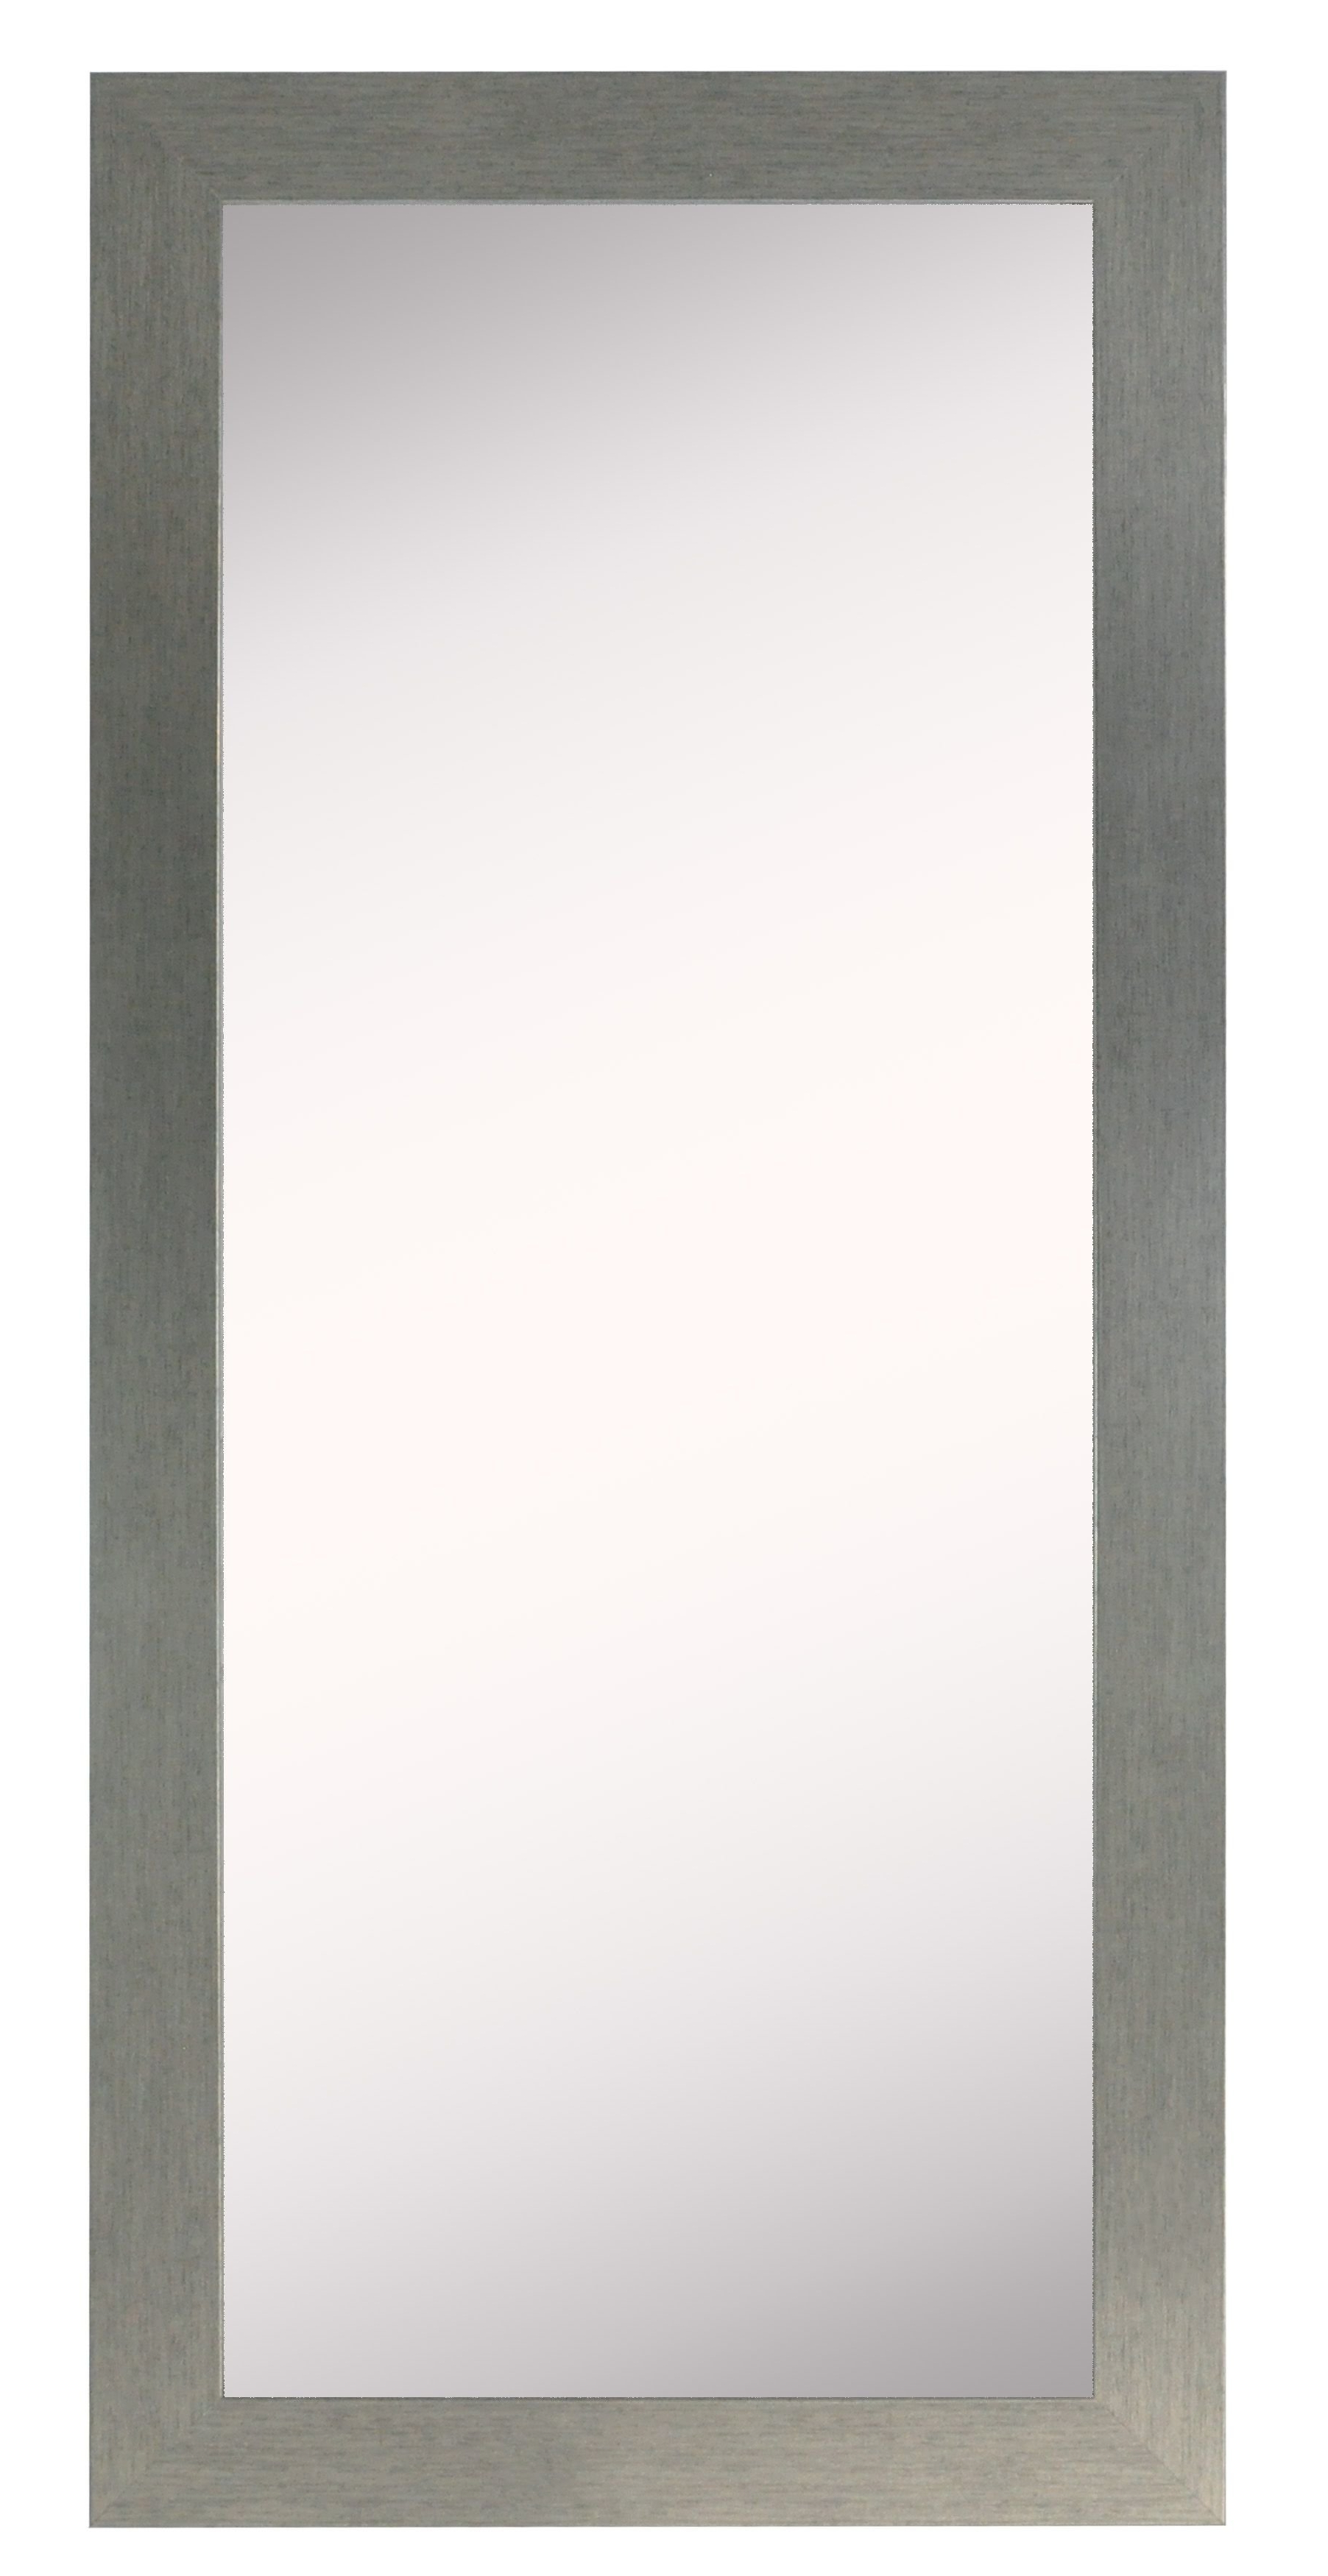 Widely Used Modern & Contemporary Full Length Mirror With Regard To Sartain Modern & Contemporary Wall Mirrors (View 20 of 20)